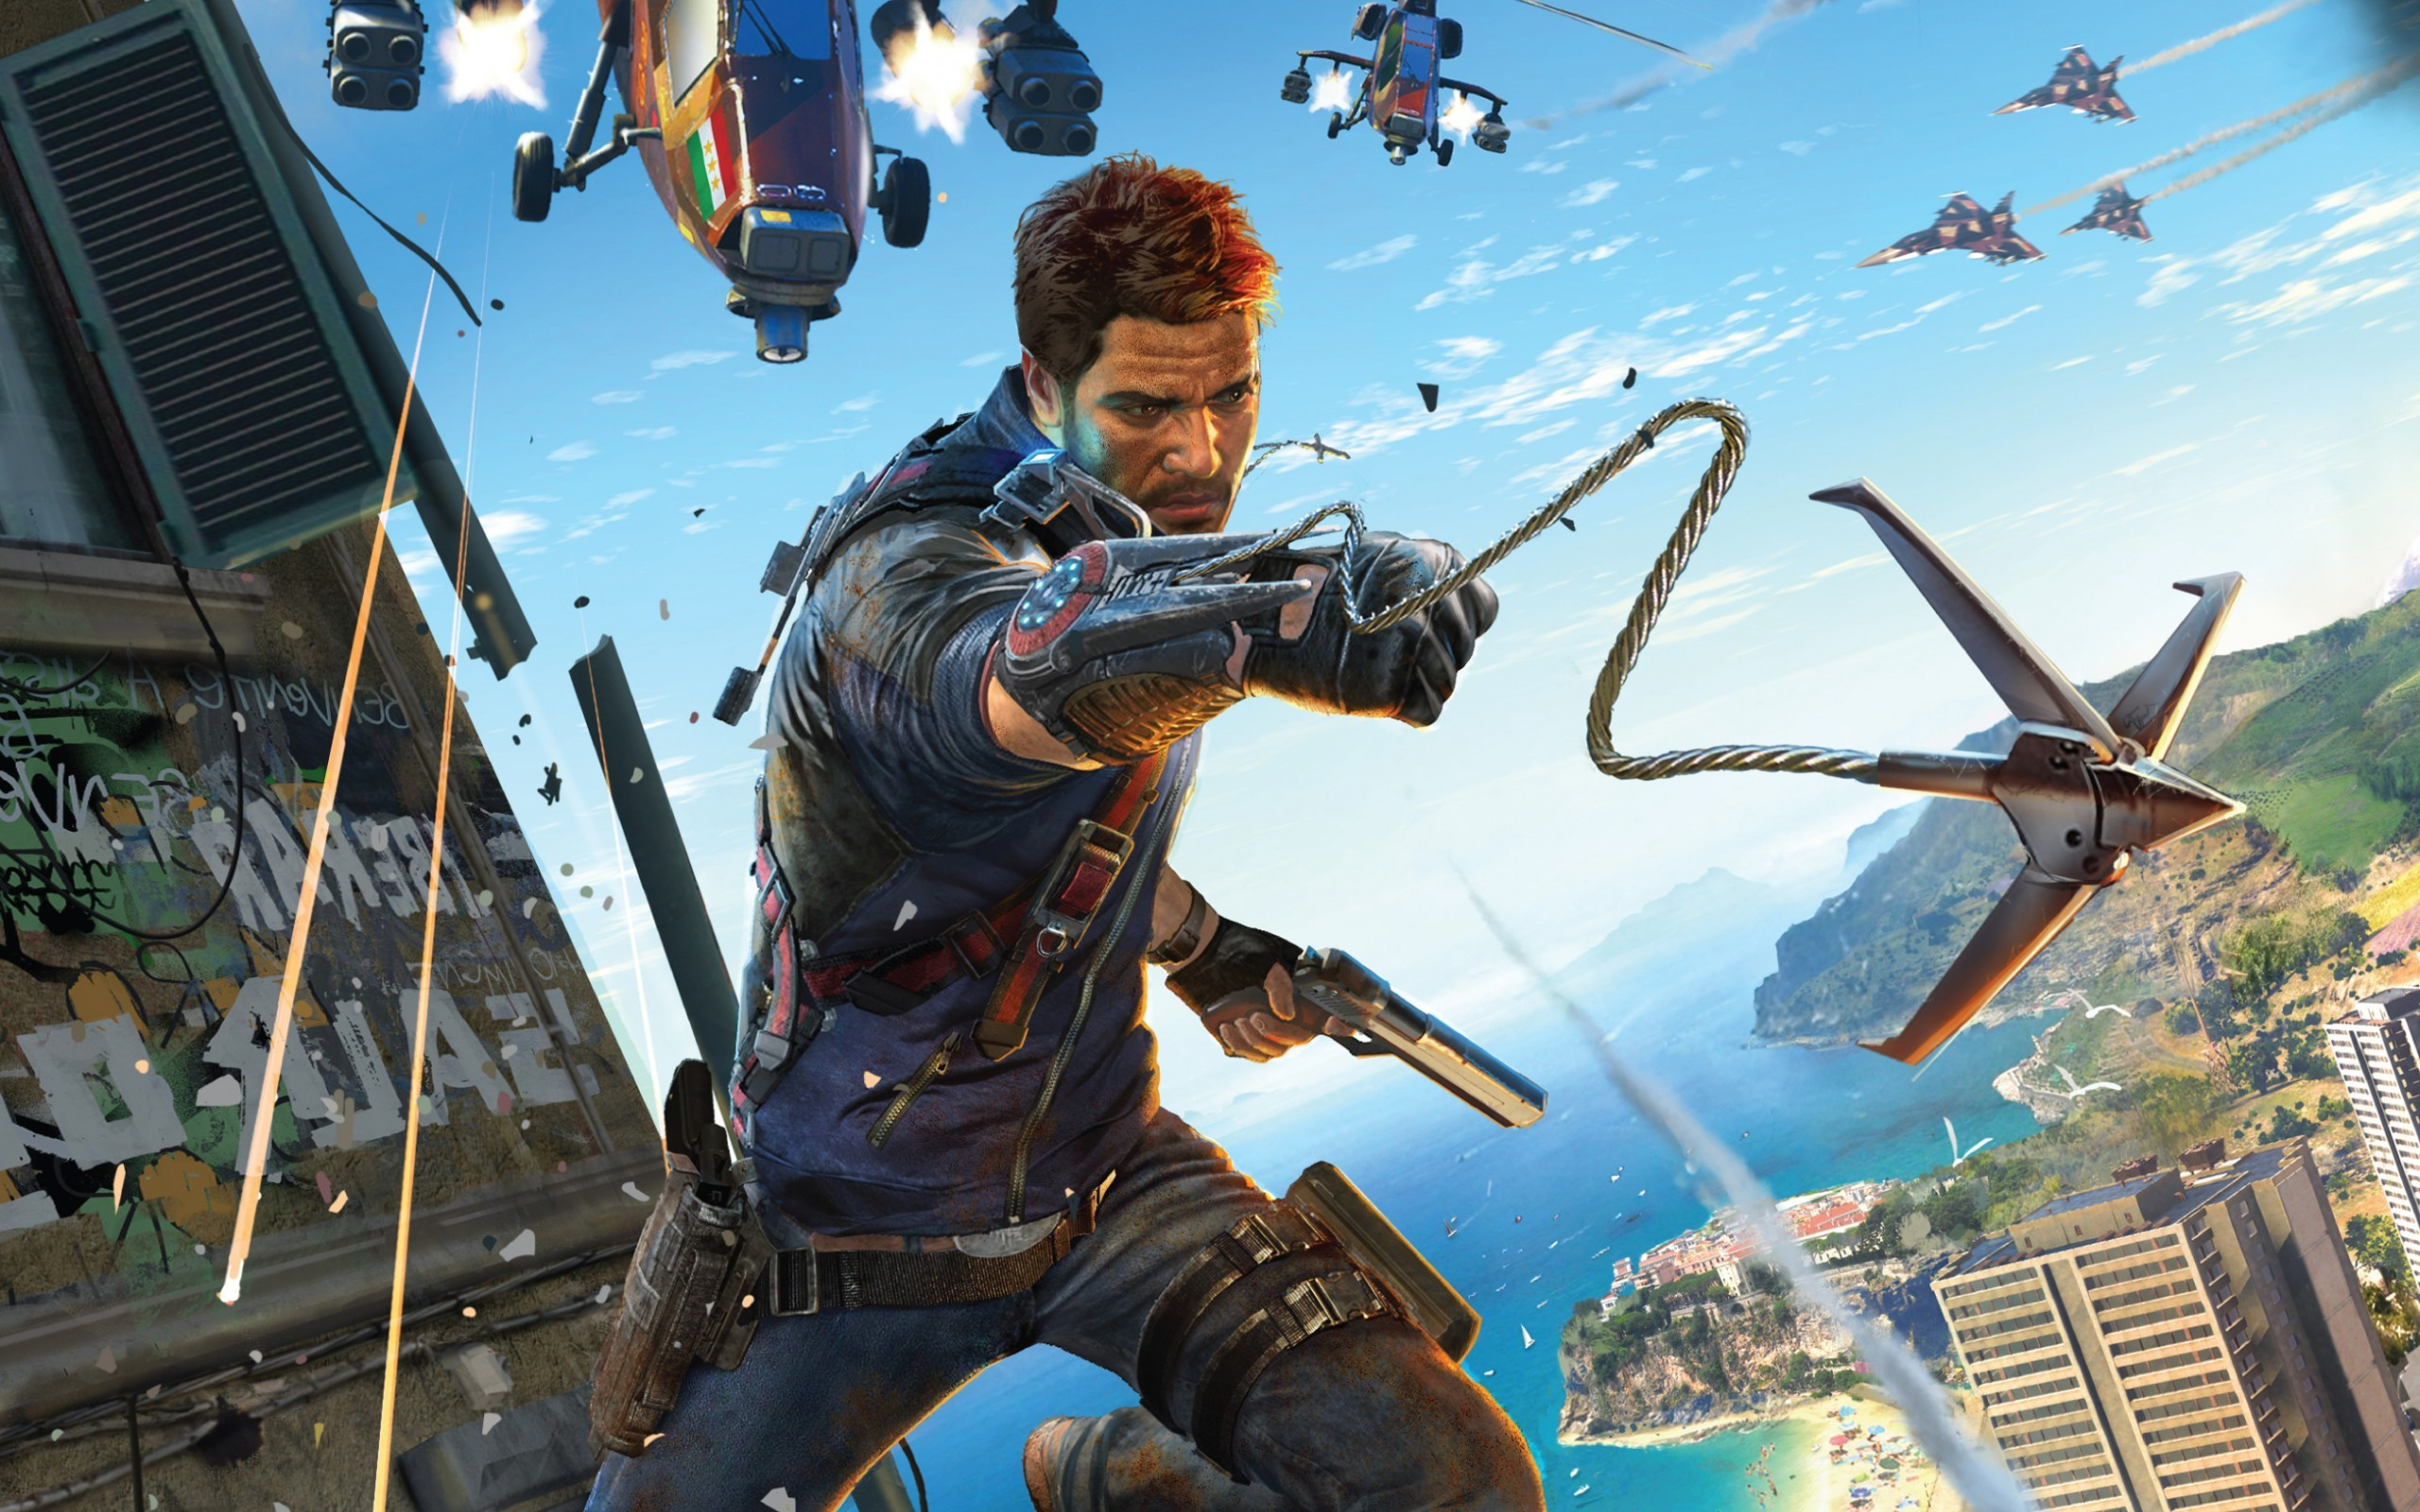 2048x1152 Just Cause 3 Game Resolution HD 4k